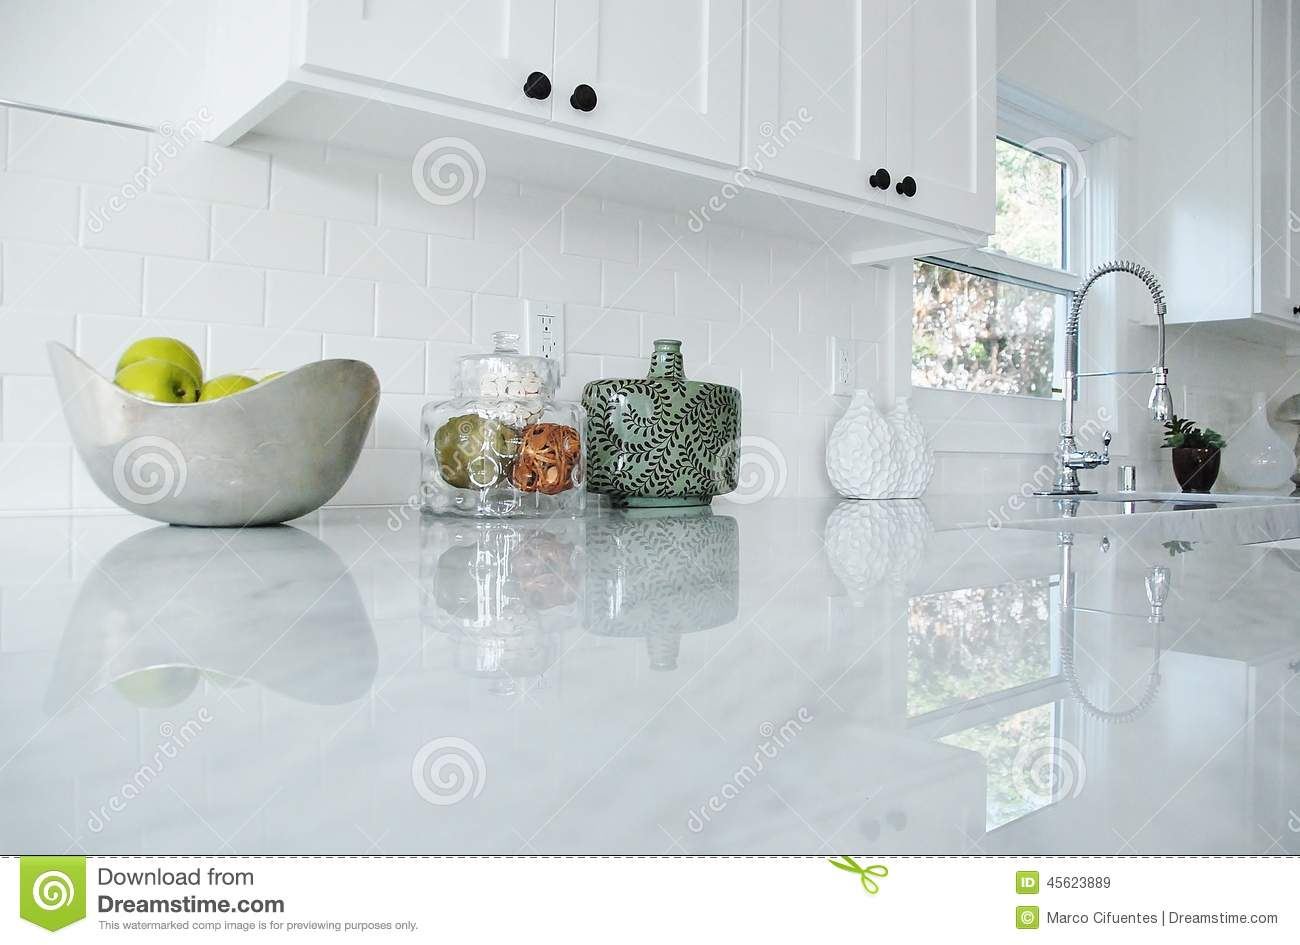 stock photo bright white kitchen carrara marble countertops chrome faucet image white kitchen countertops Kitchen Counter